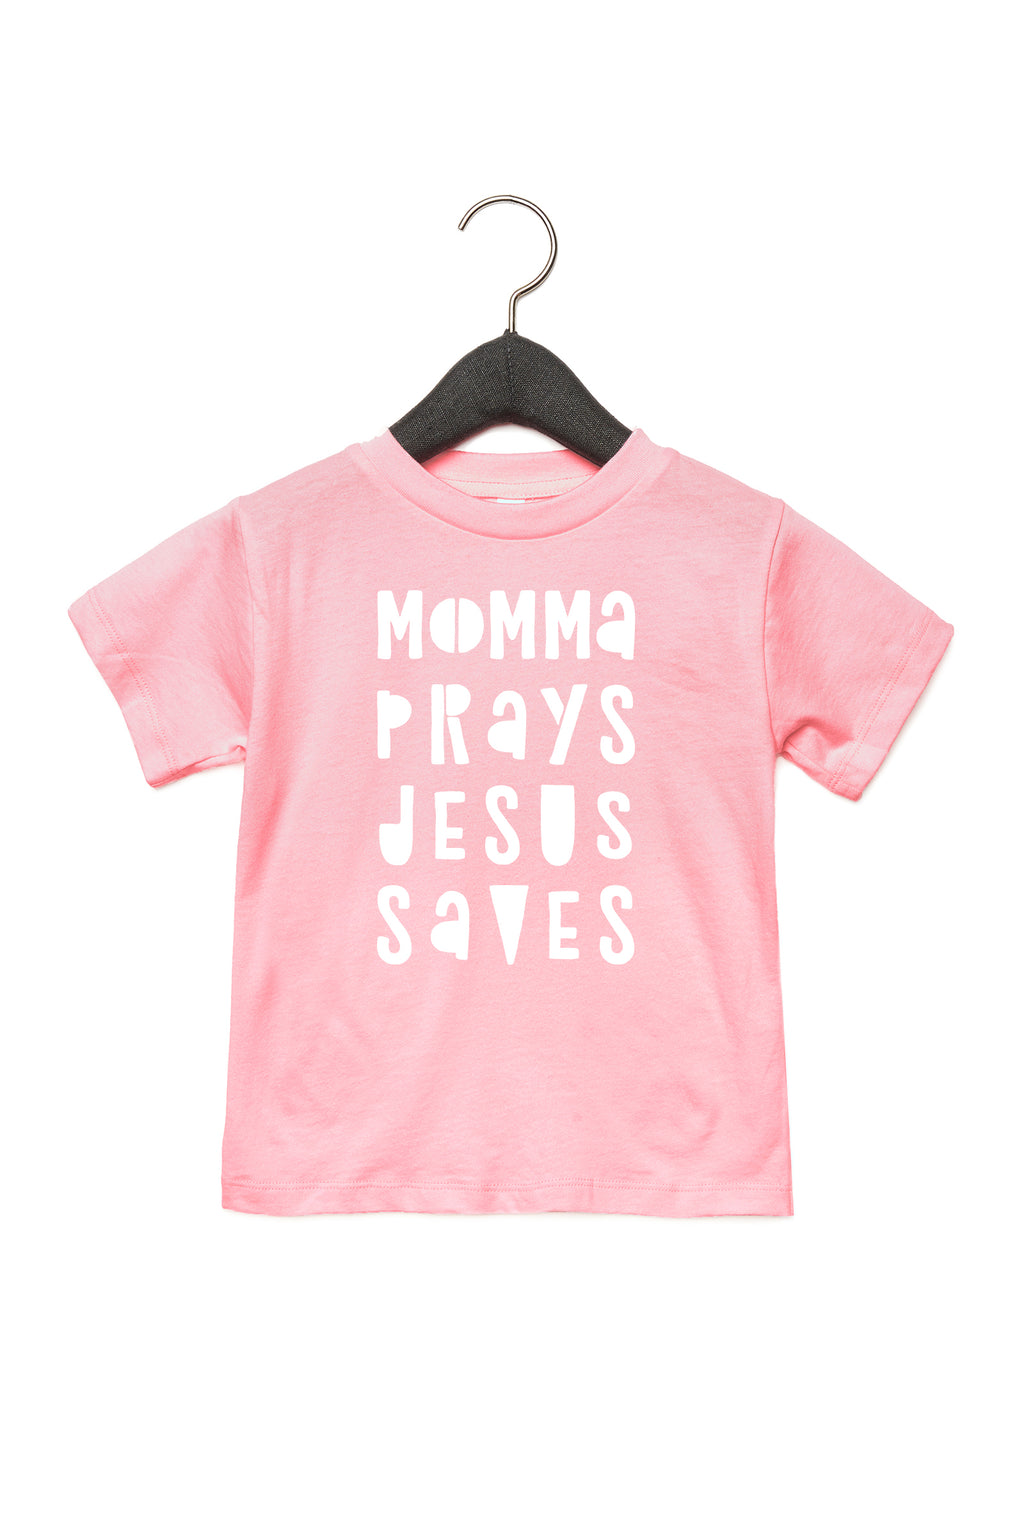 (PRE-ORDER) Momma Prays Jesus Saves™️ Toddler T-Shirt | Pink